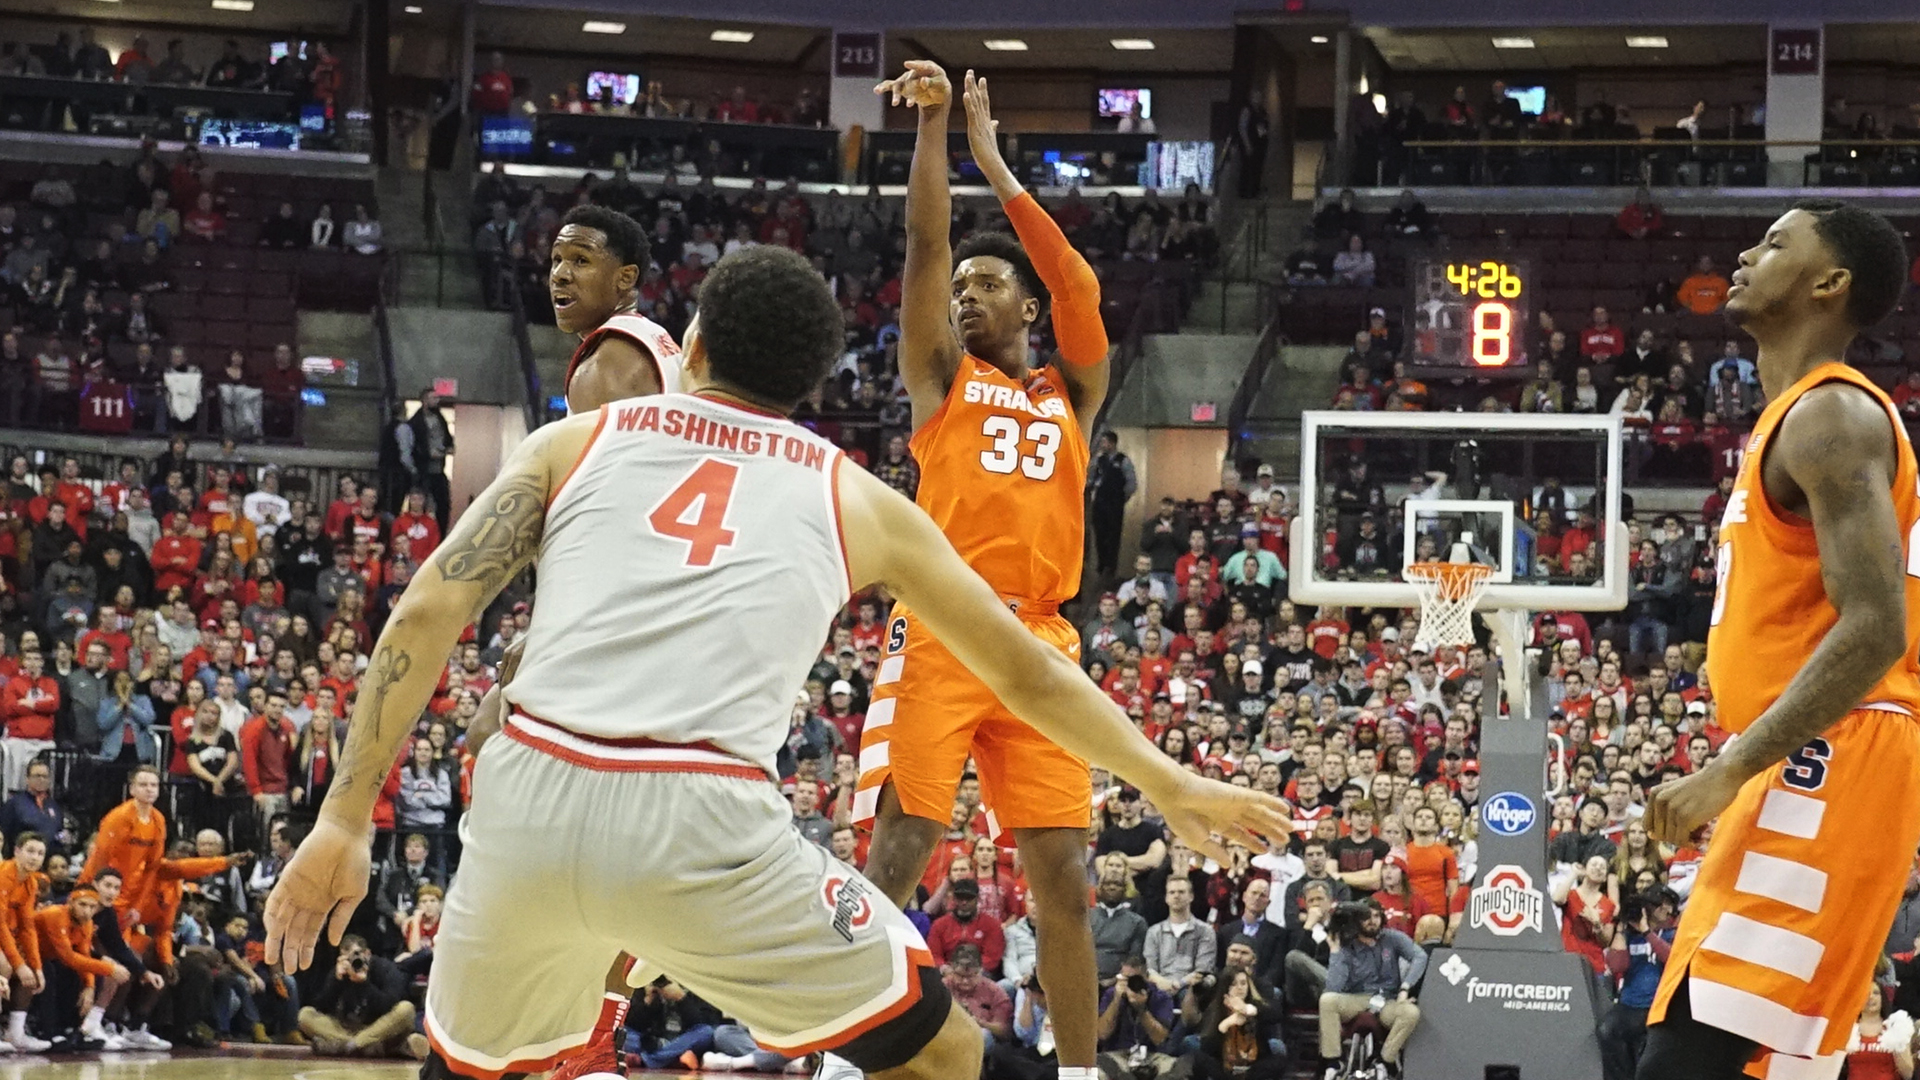 Strong Second Half Pushes Orange Past 16 Ohio State